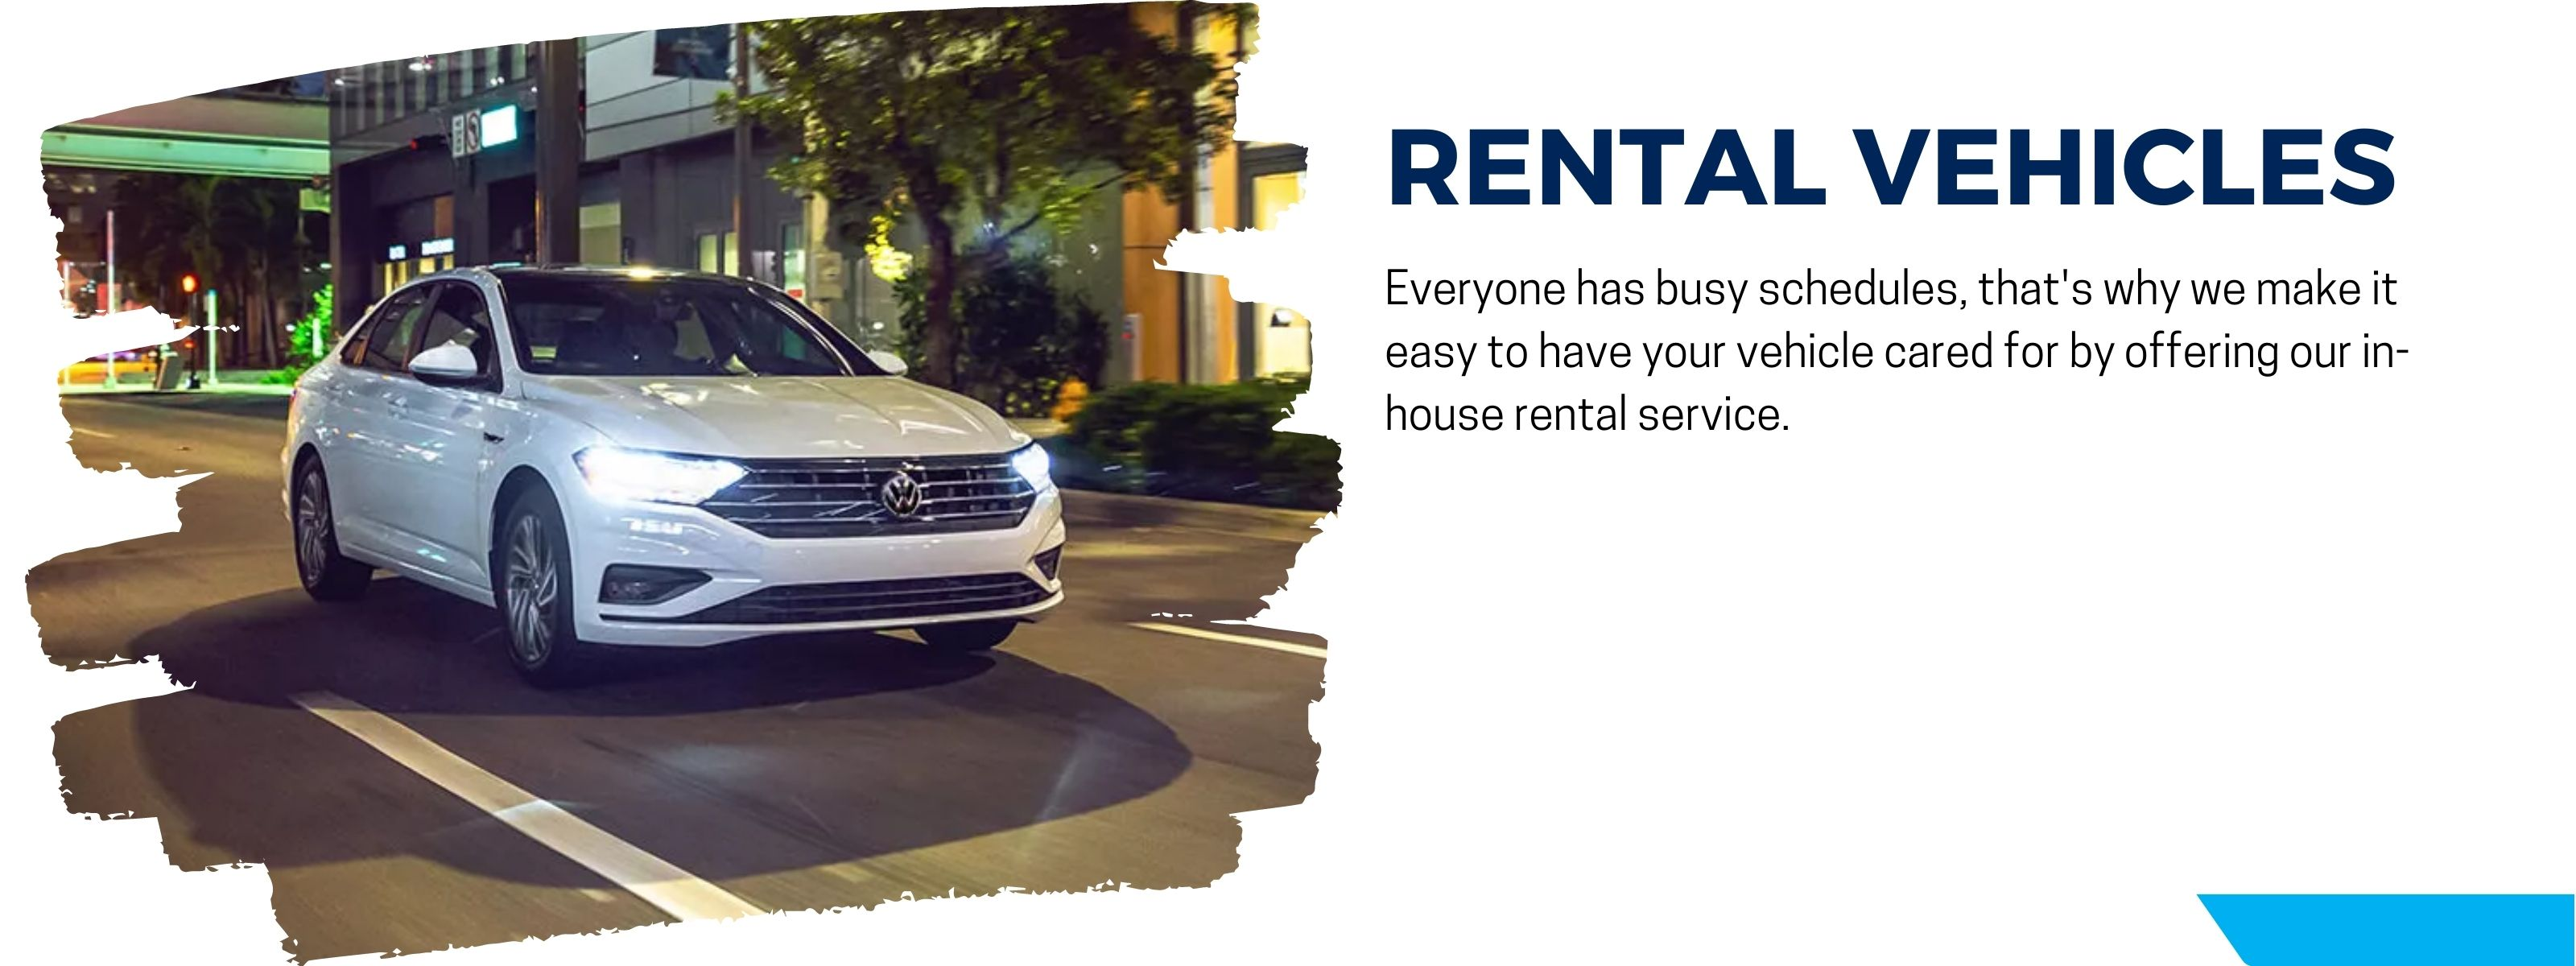 we offer a rental service to help with your busy schedule